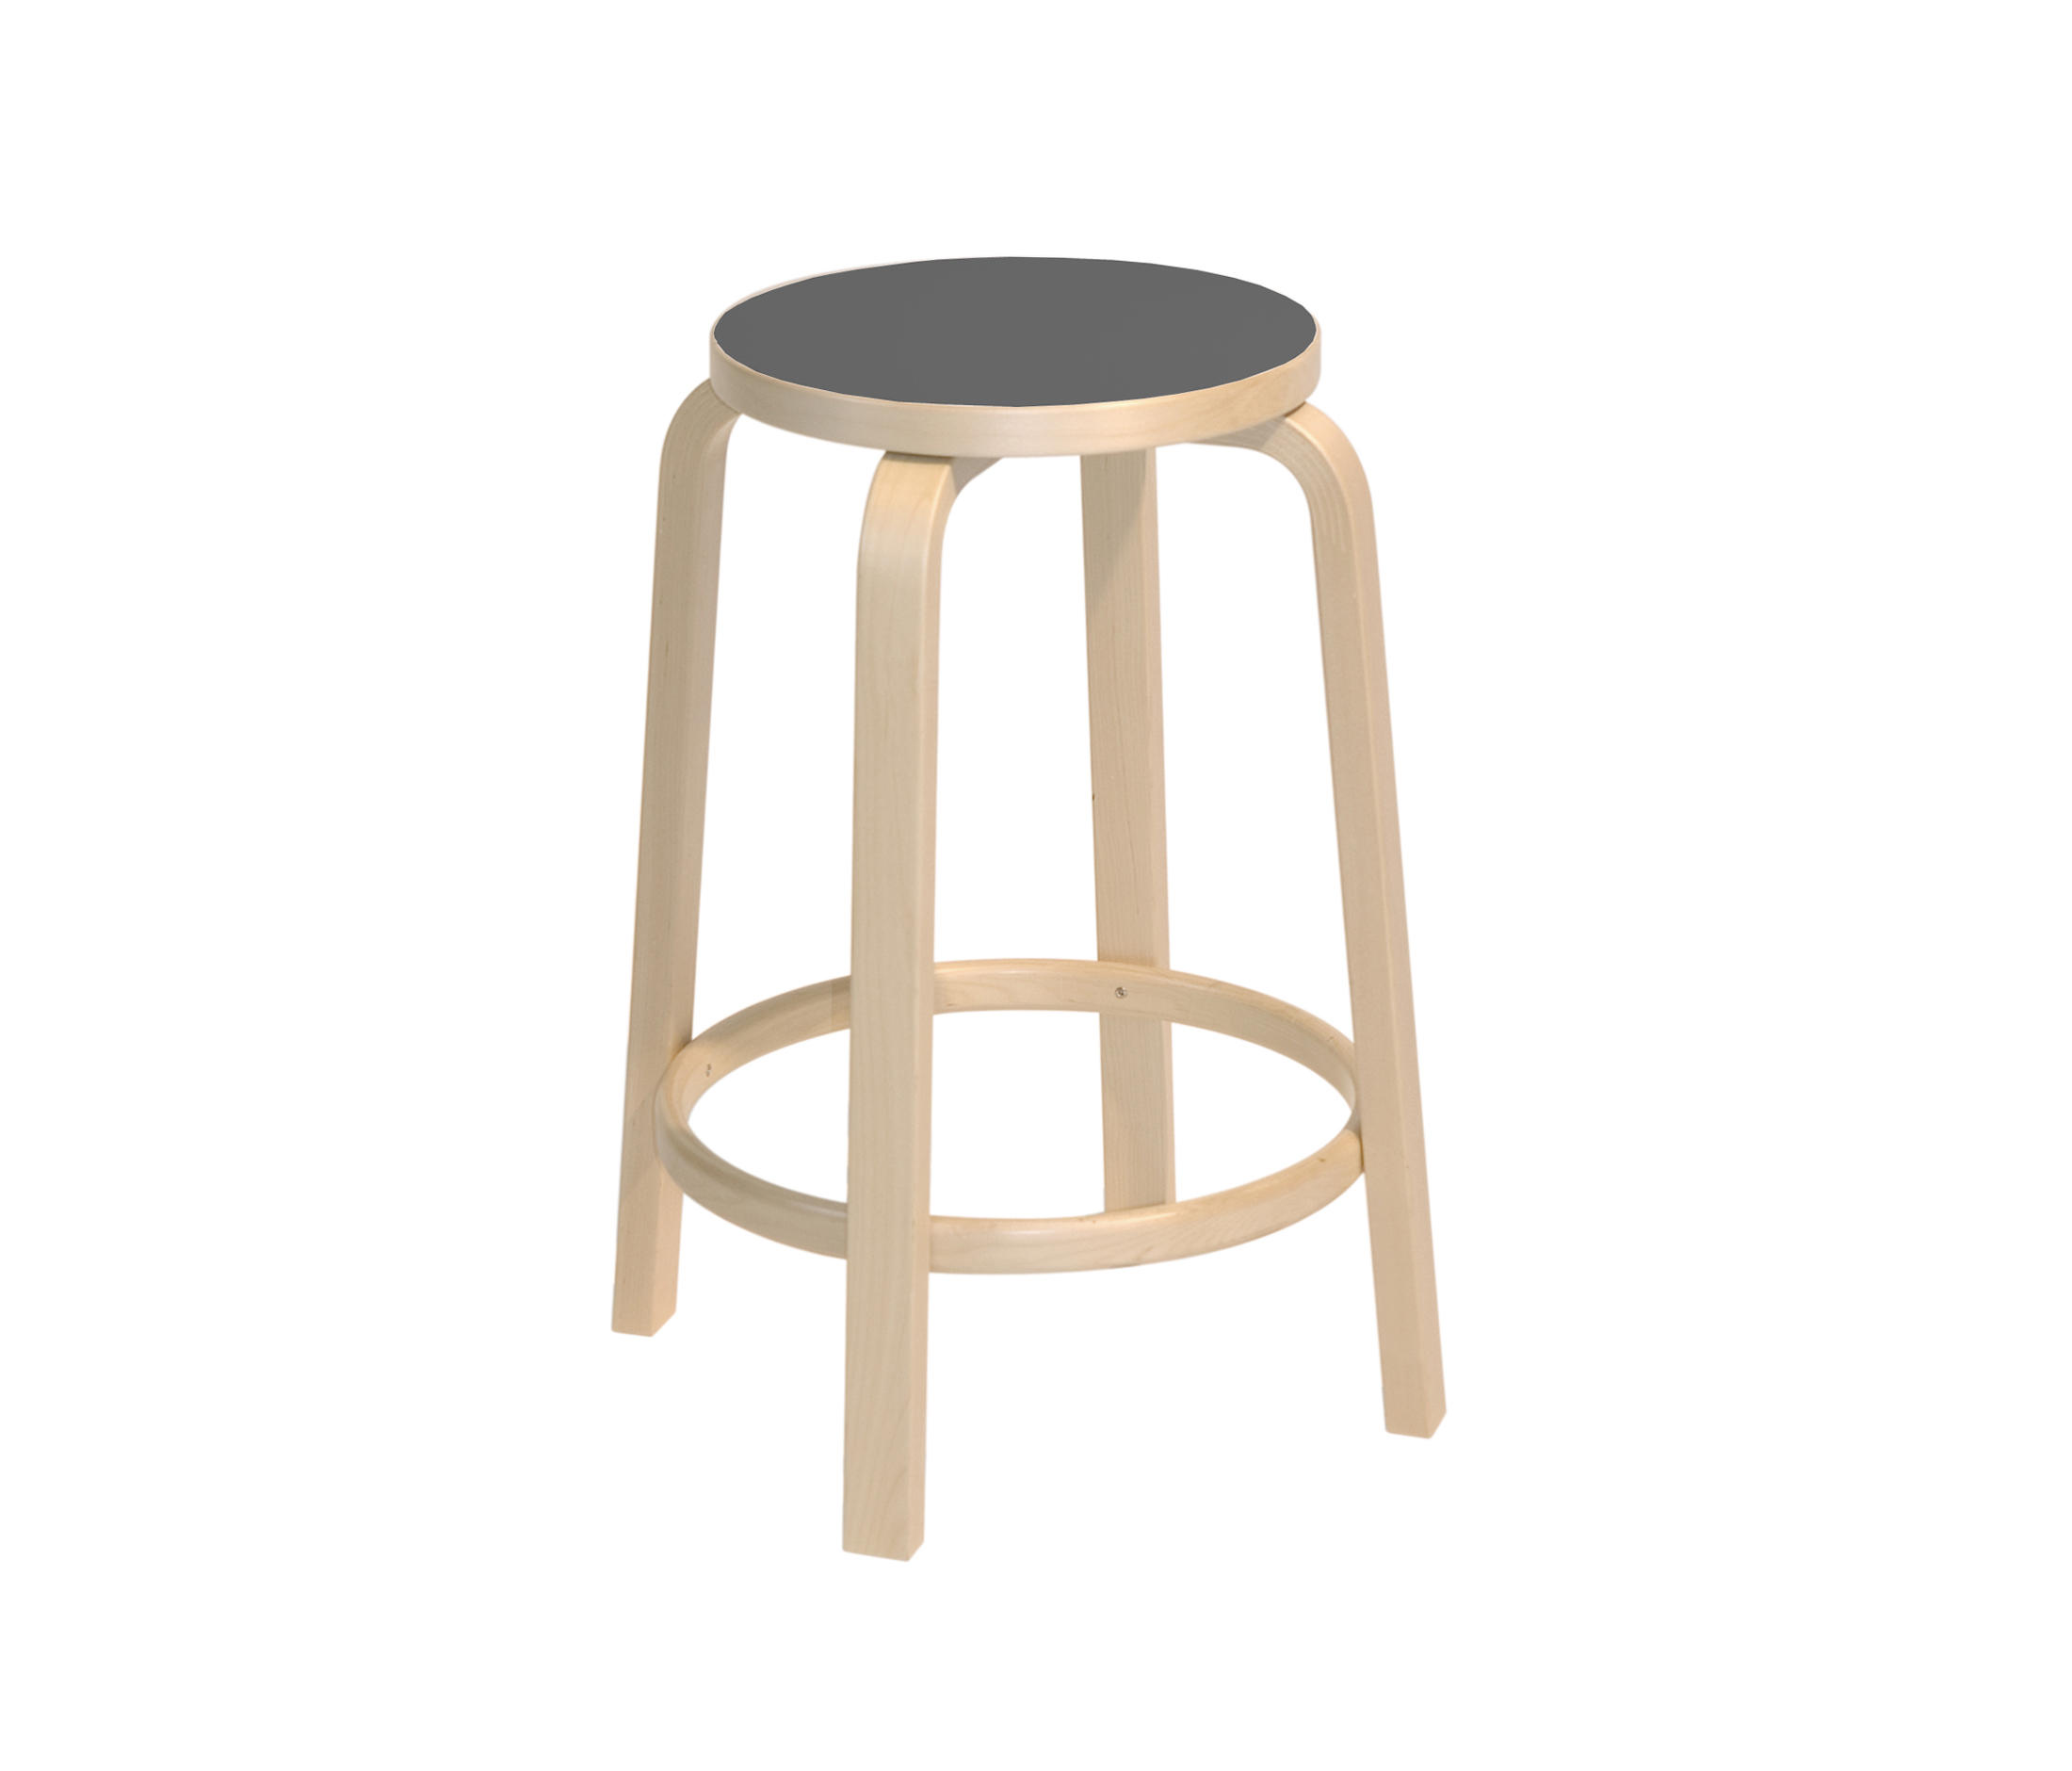 High Chair 64 By Artek | Bar Stools ...